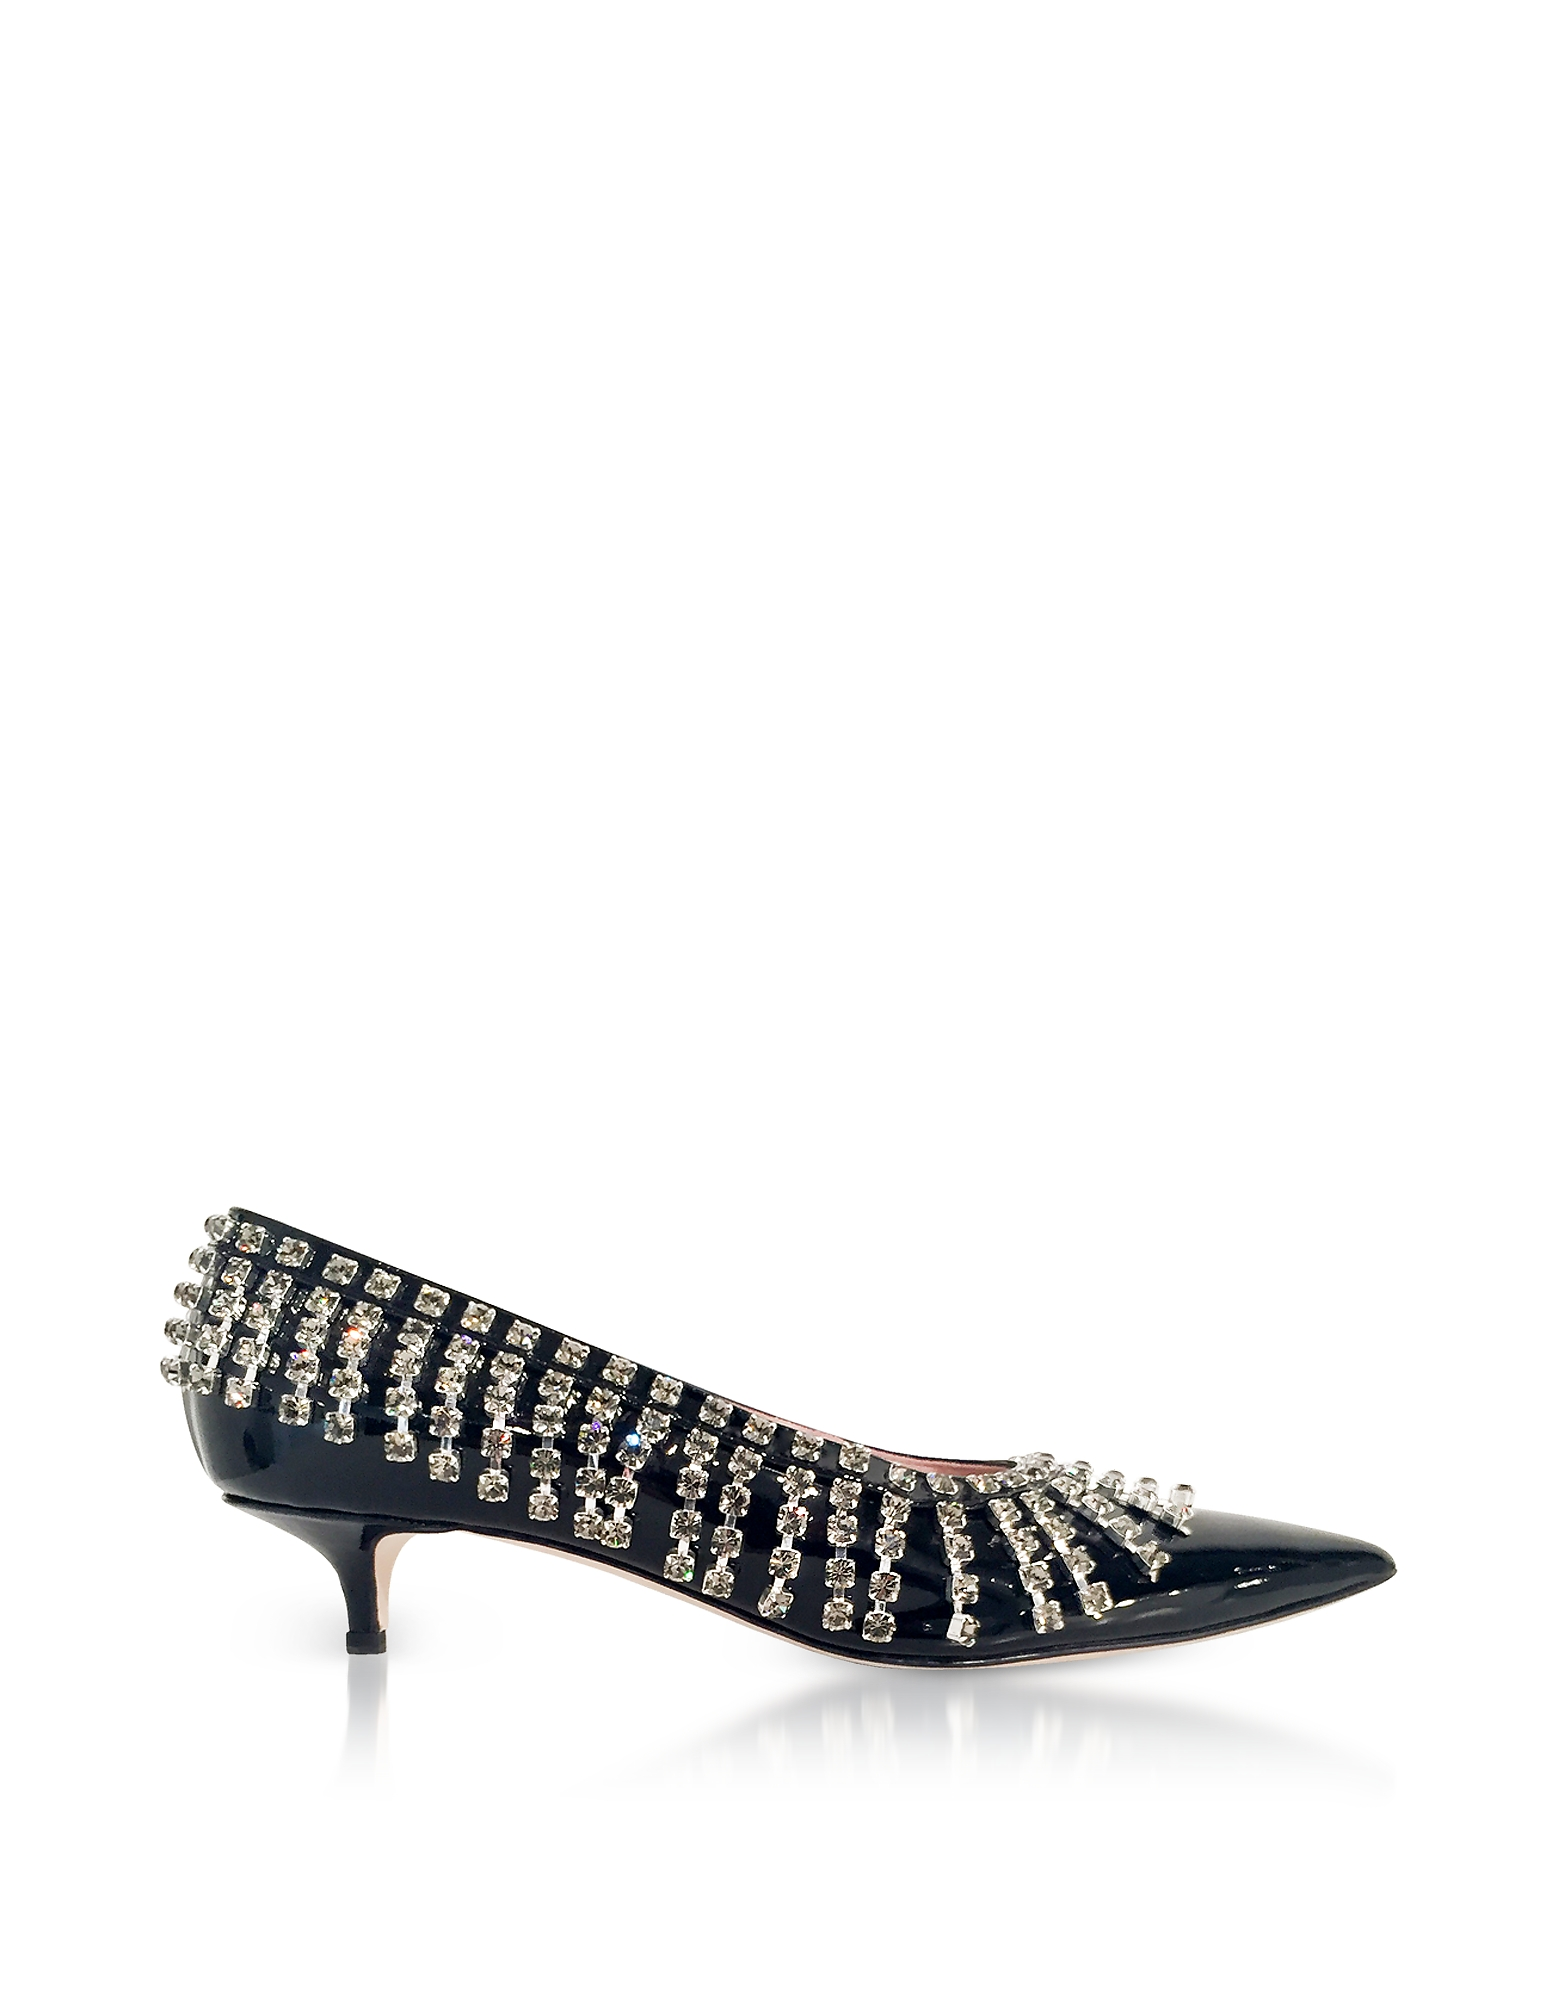 Christopher Kane Shoes, Crystal Fringes Patent Leather Mid-Heel Pumps